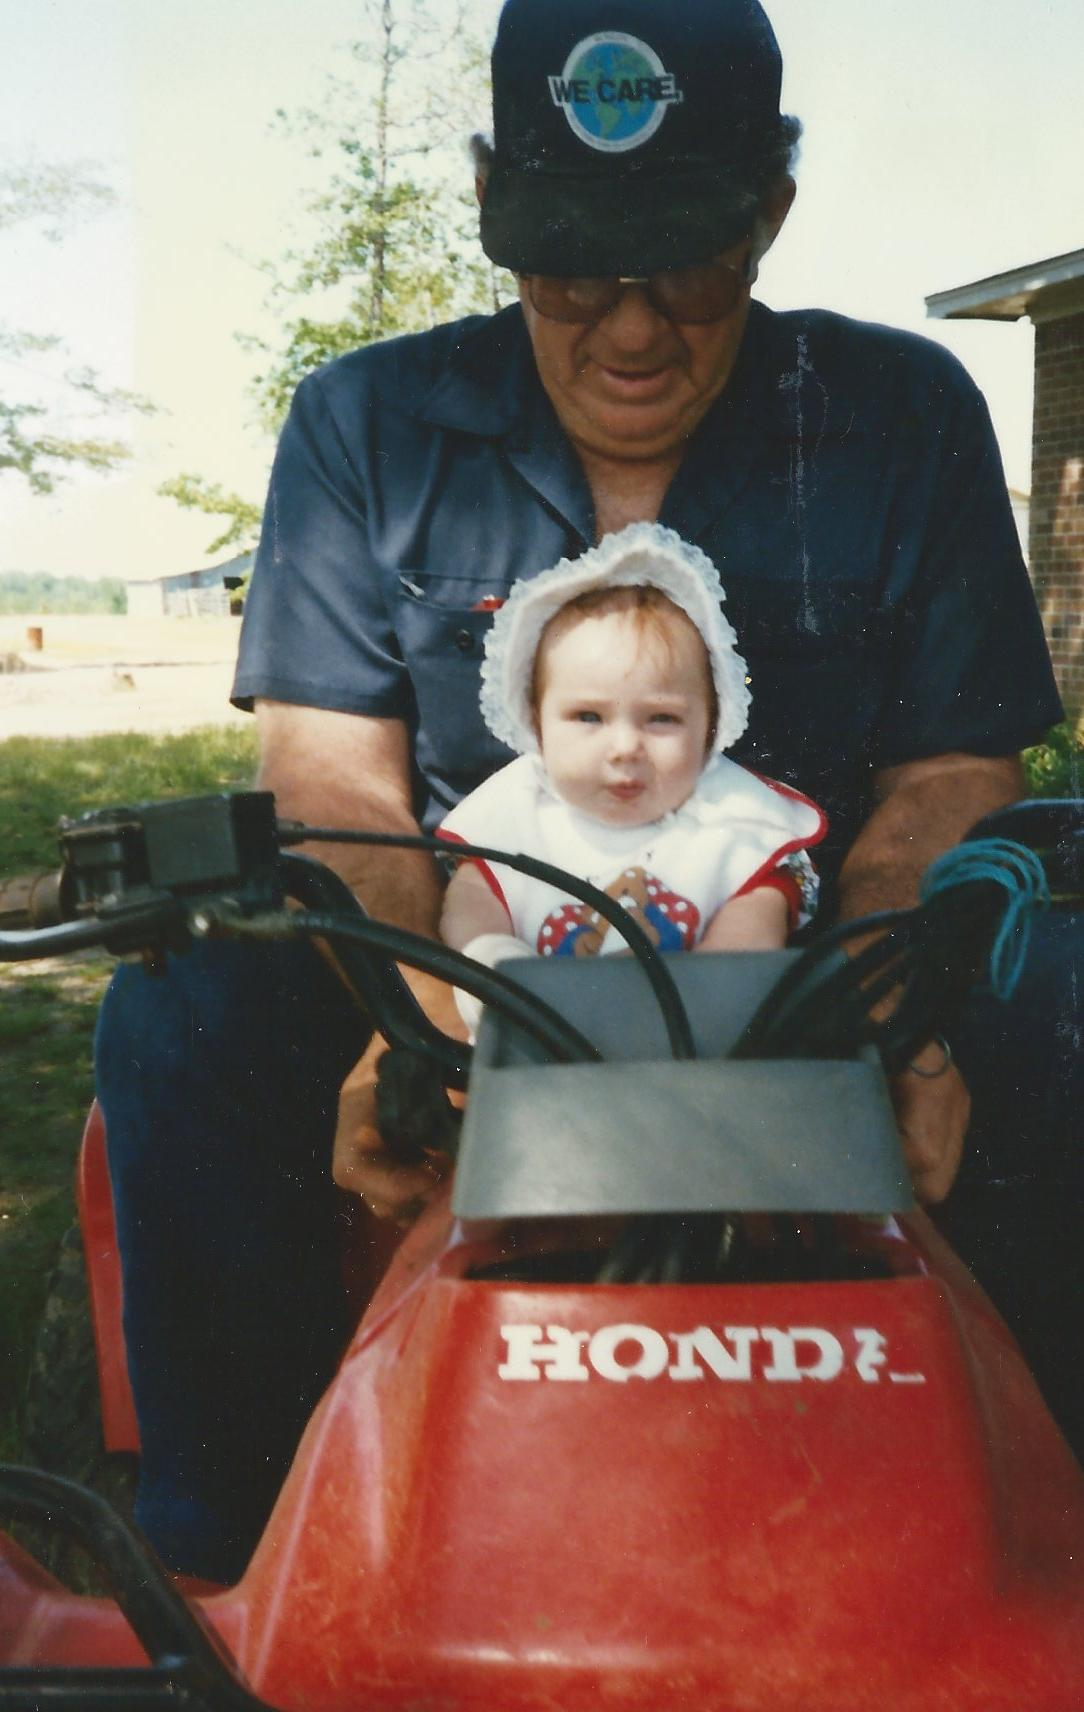 Here is a throwback for y'all--this is Paw Riley and I was just a wee thing. Man, I wish I could still work a bonnet like that *wink*